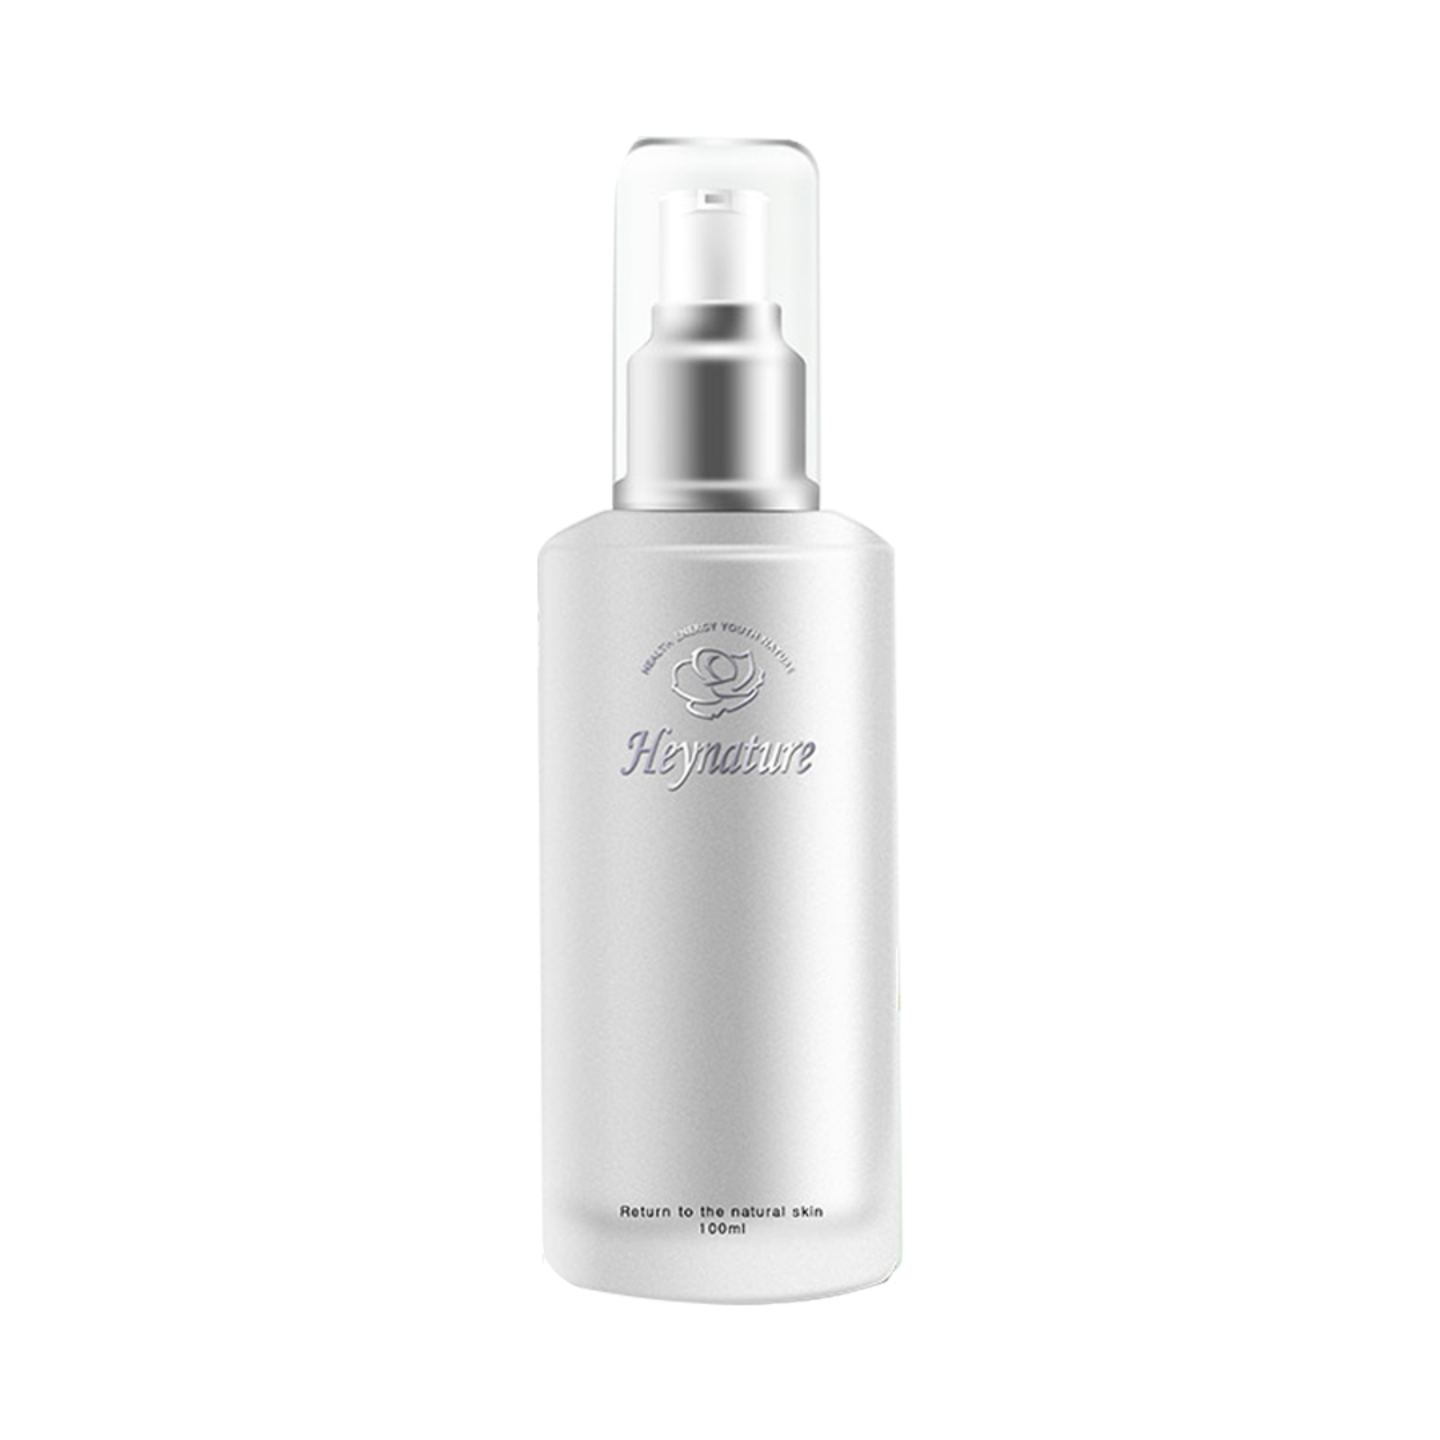 Heynature Erseongcho Lotion - 100ml